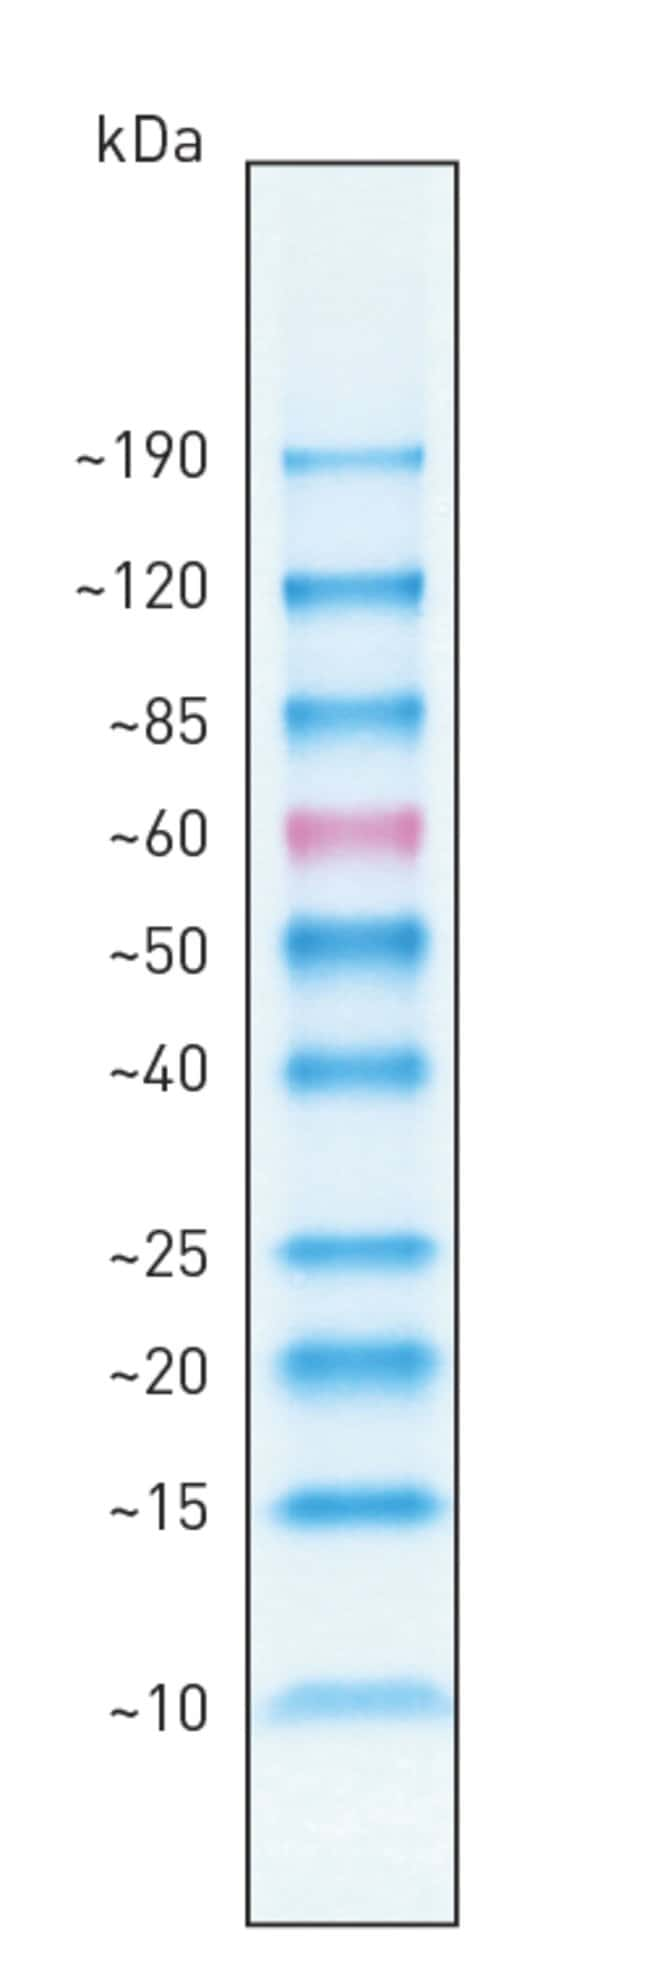 BenchMark Pre-stained Protein Ladder band profile